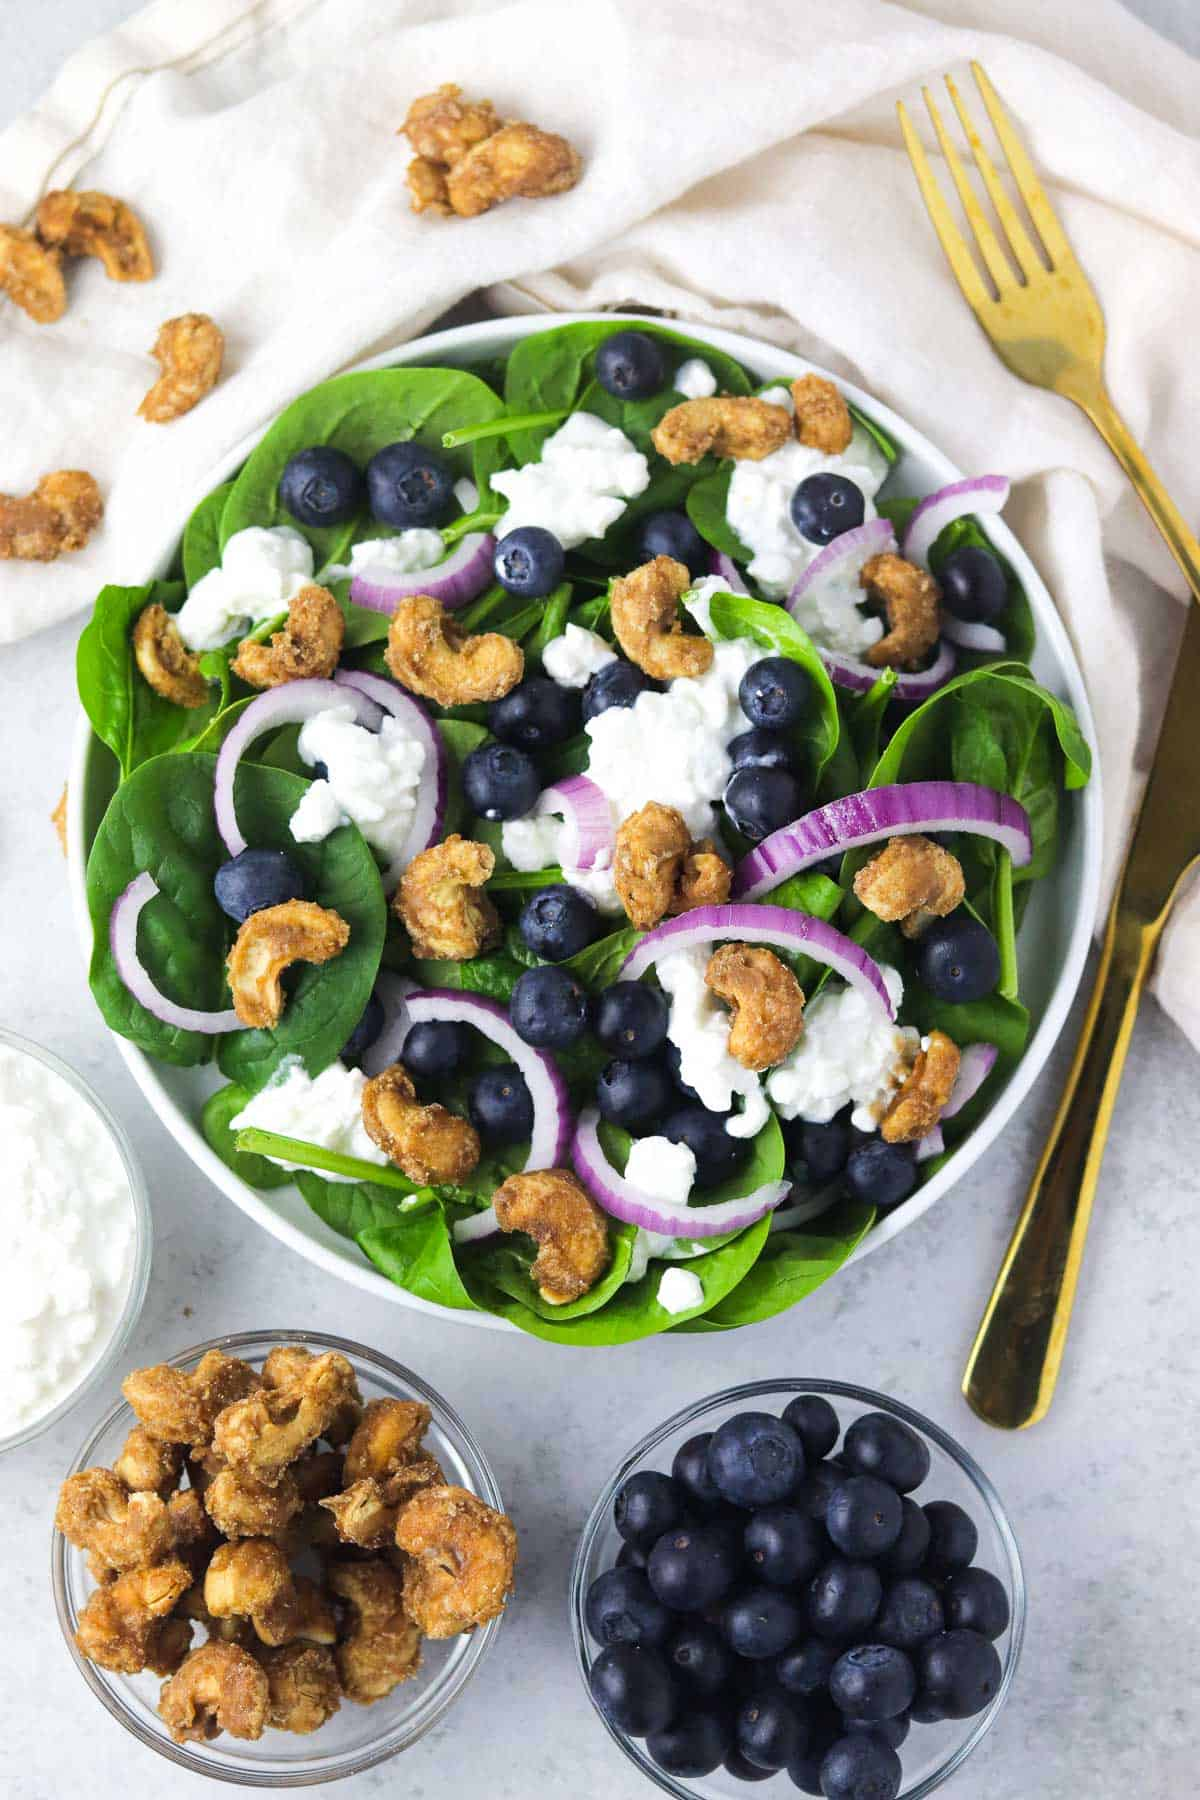 spinach blueberry salad with candied cashews on the counter.